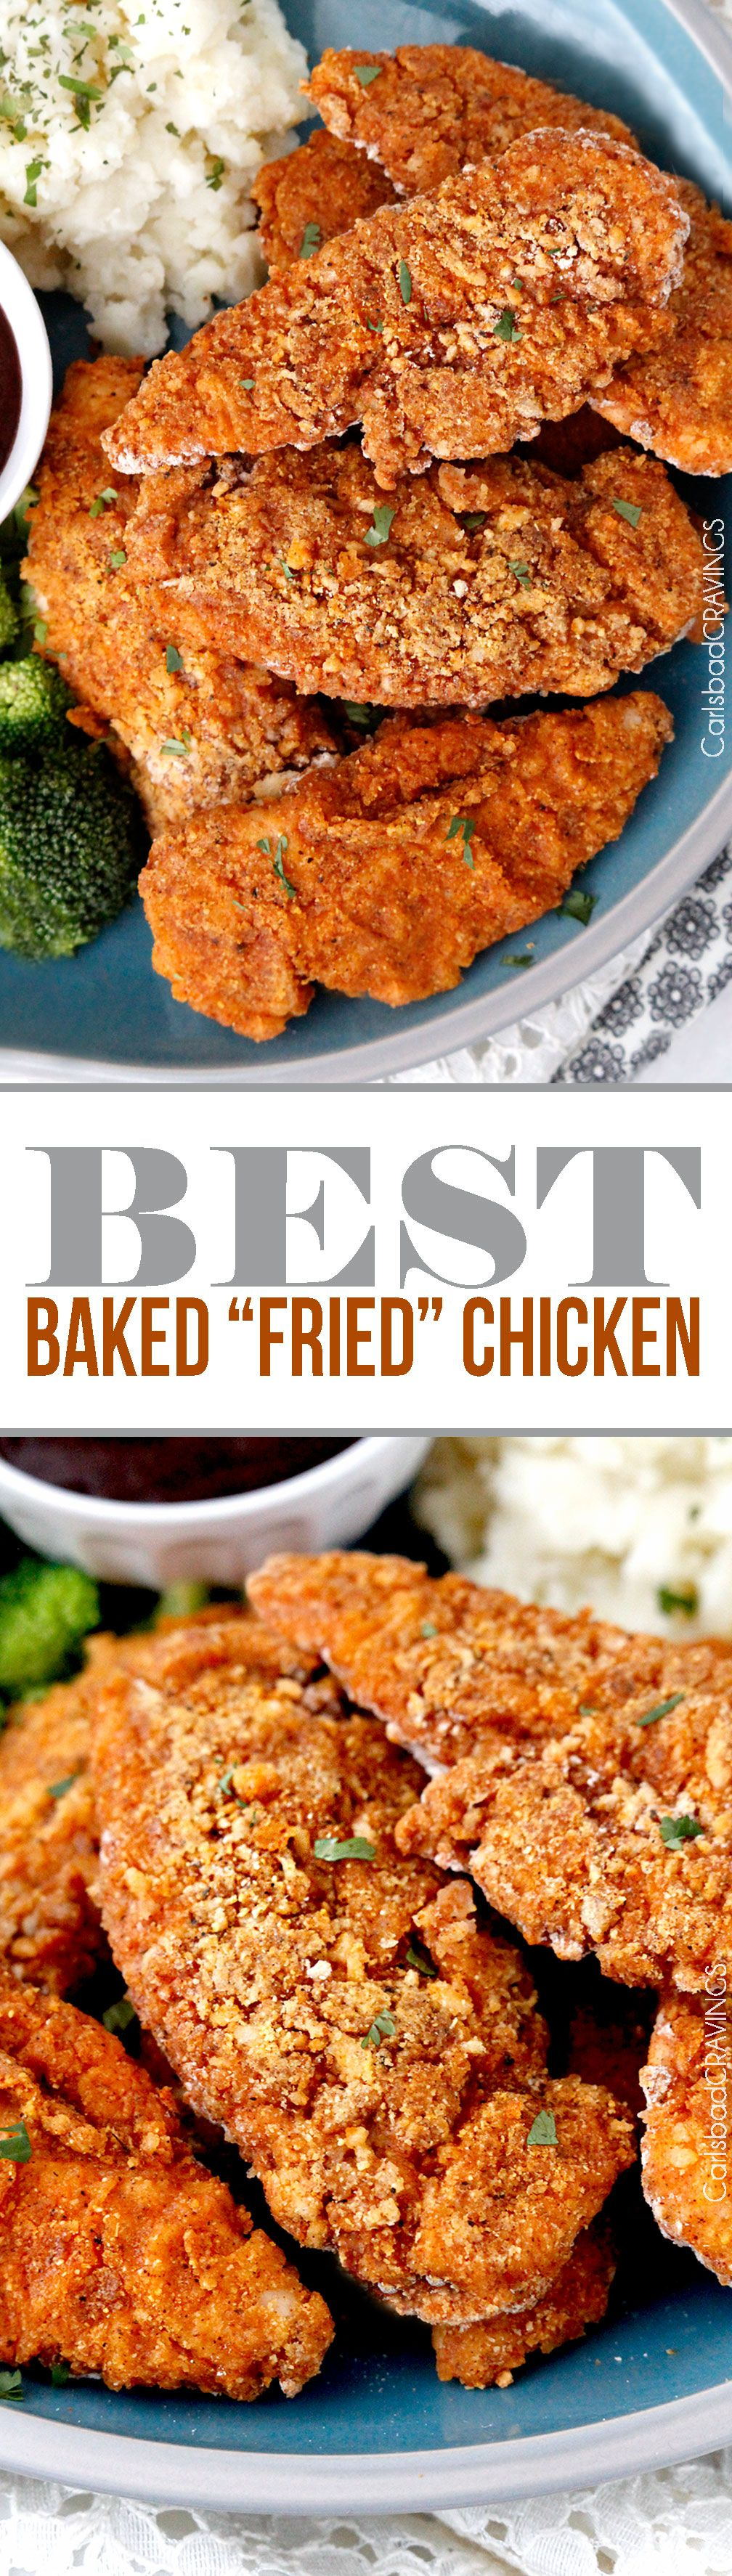 "seriously the BEST Baked ""fried"" chicken!  Crispy chicken marinated in spiced buttermilk then breaded with flour, panko, cornmeal and spices then baked in a little butter -tastes better than KFC without the grease and guilt!  #KFCchicken #bakedfriedchicken #friedchicken"